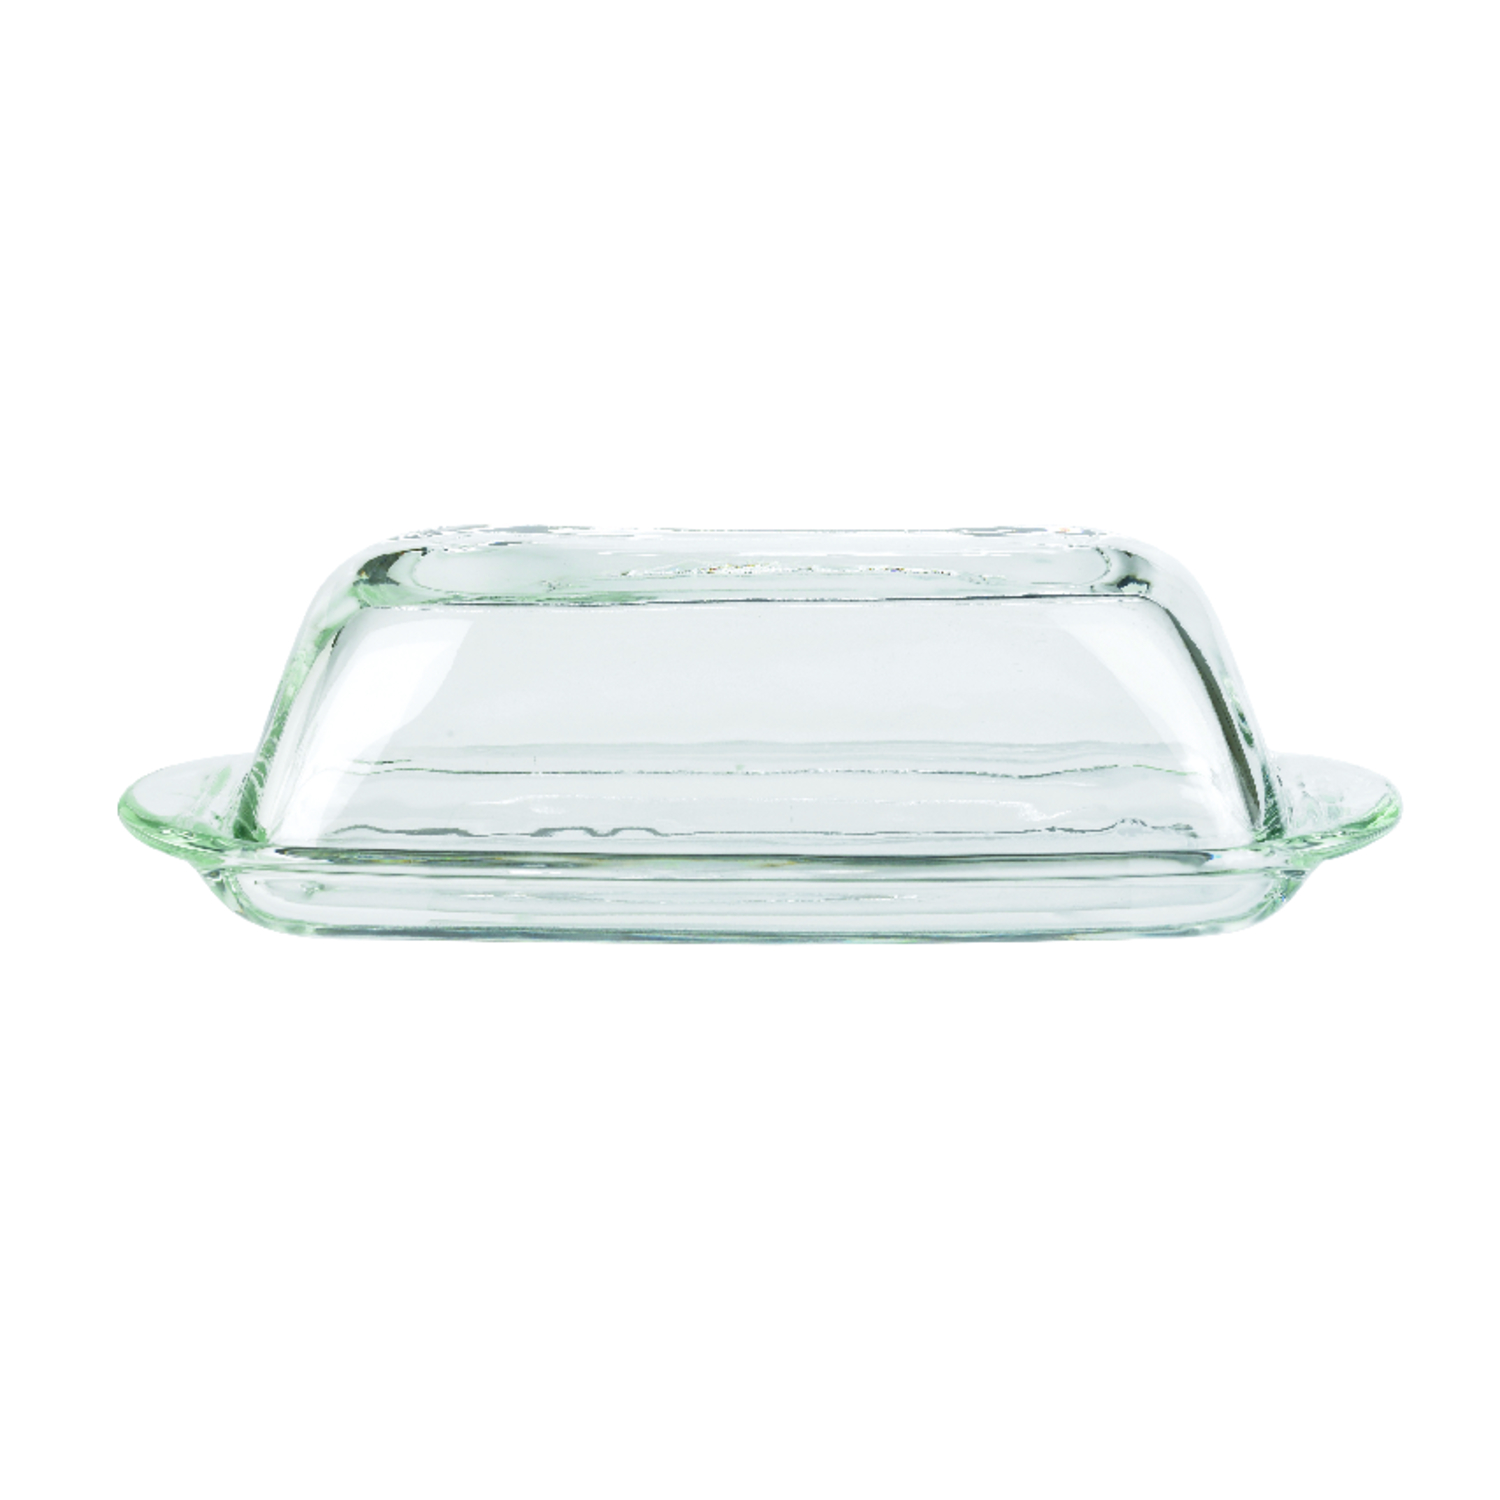 Anchor Hocking  Clear  butter dish  Glass  1 each Butter Dish